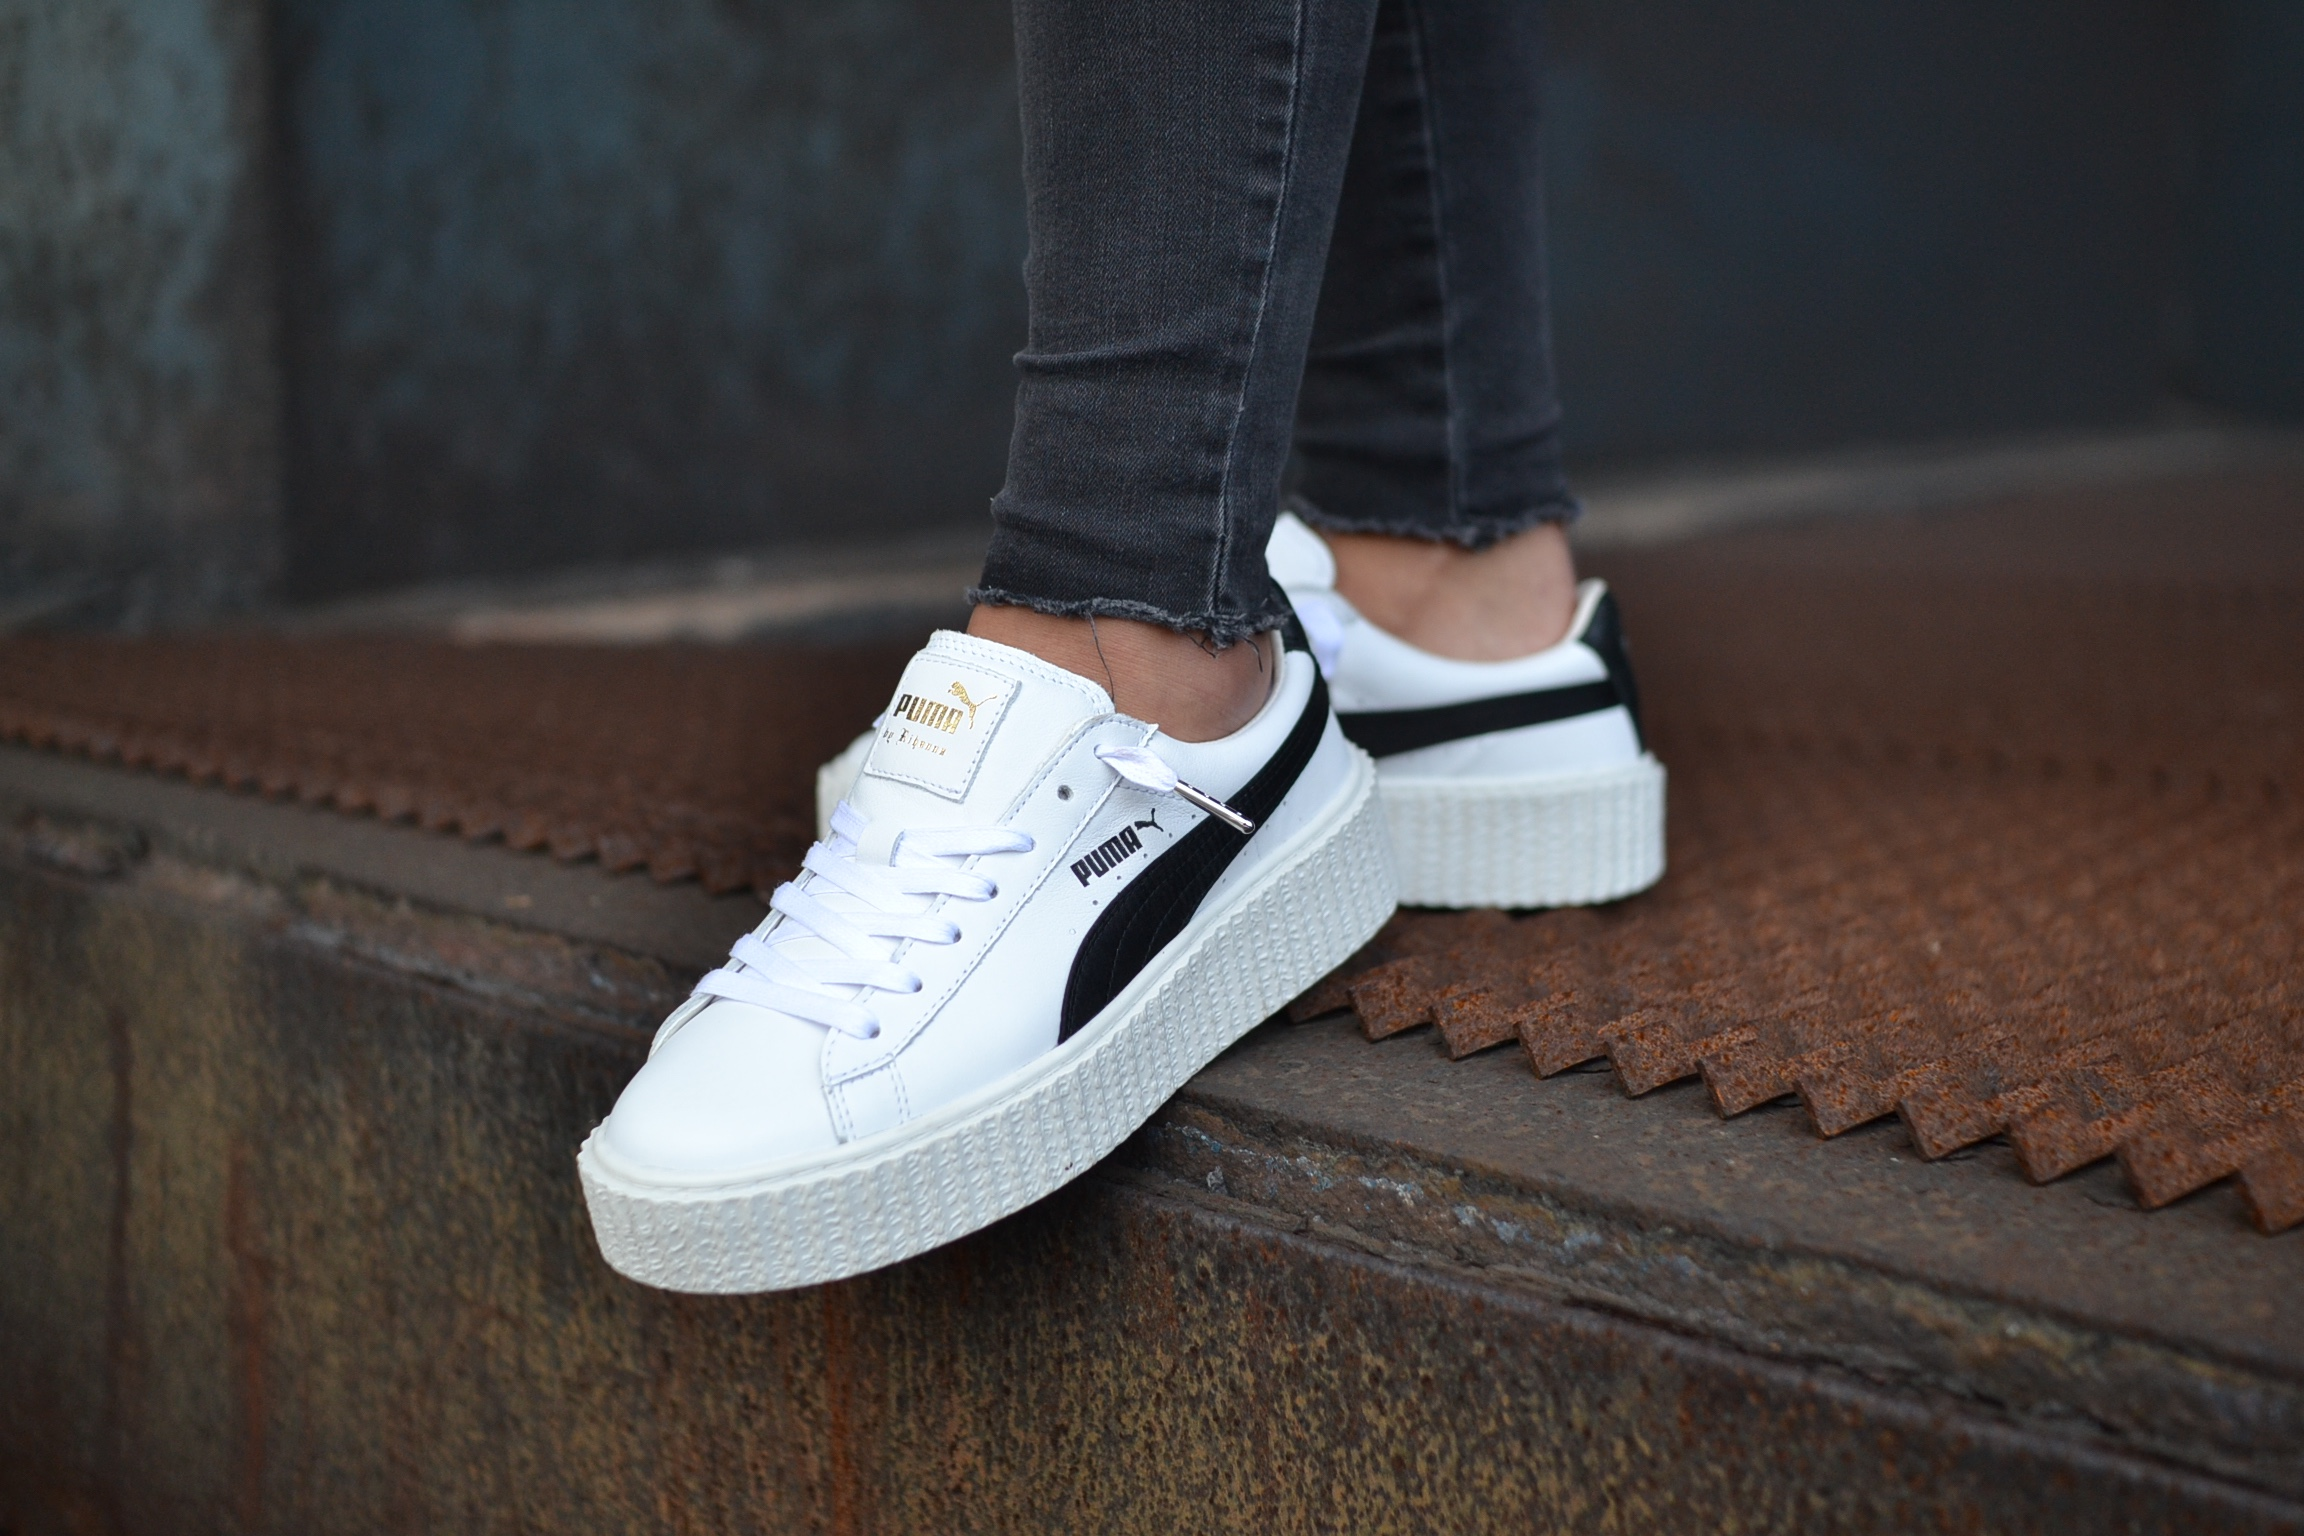 puma creepers blanche vernis